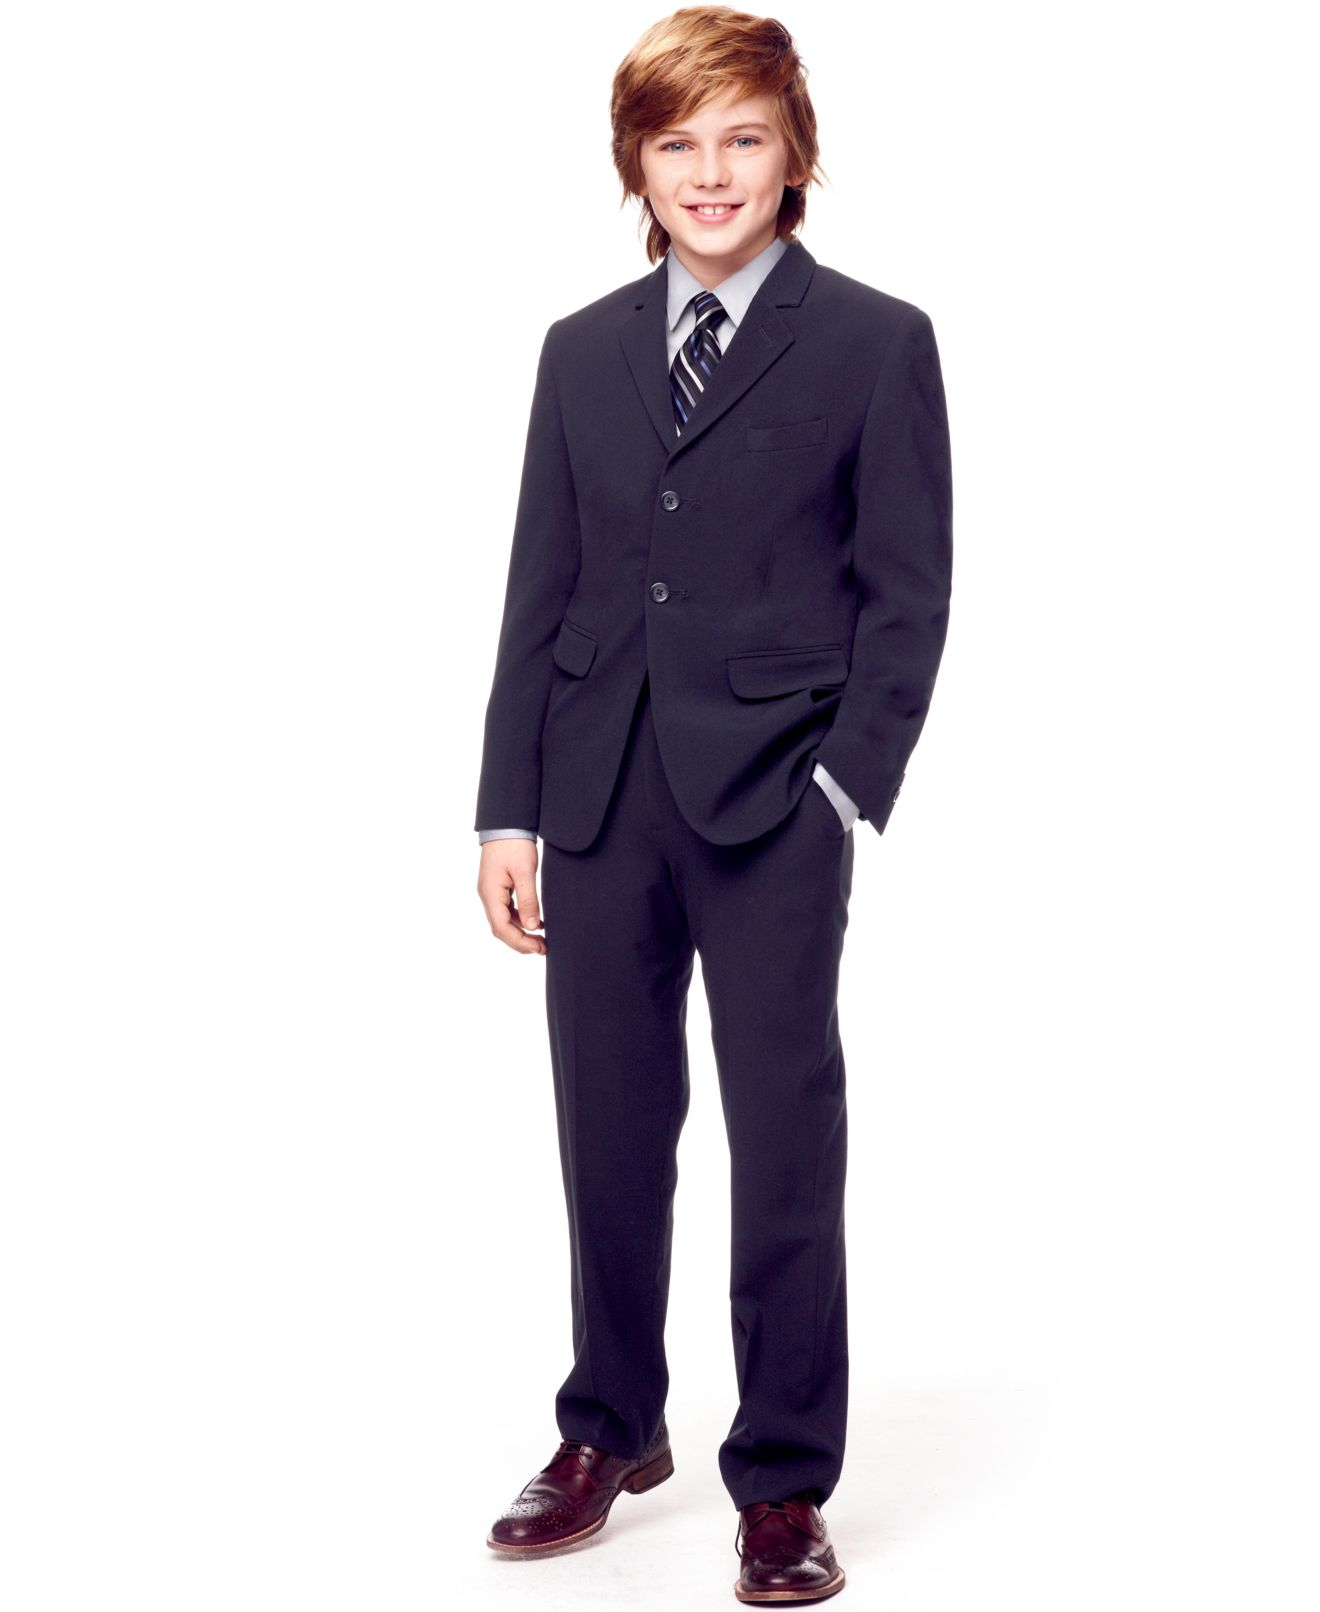 Boys Dress Jacket - Jacket To